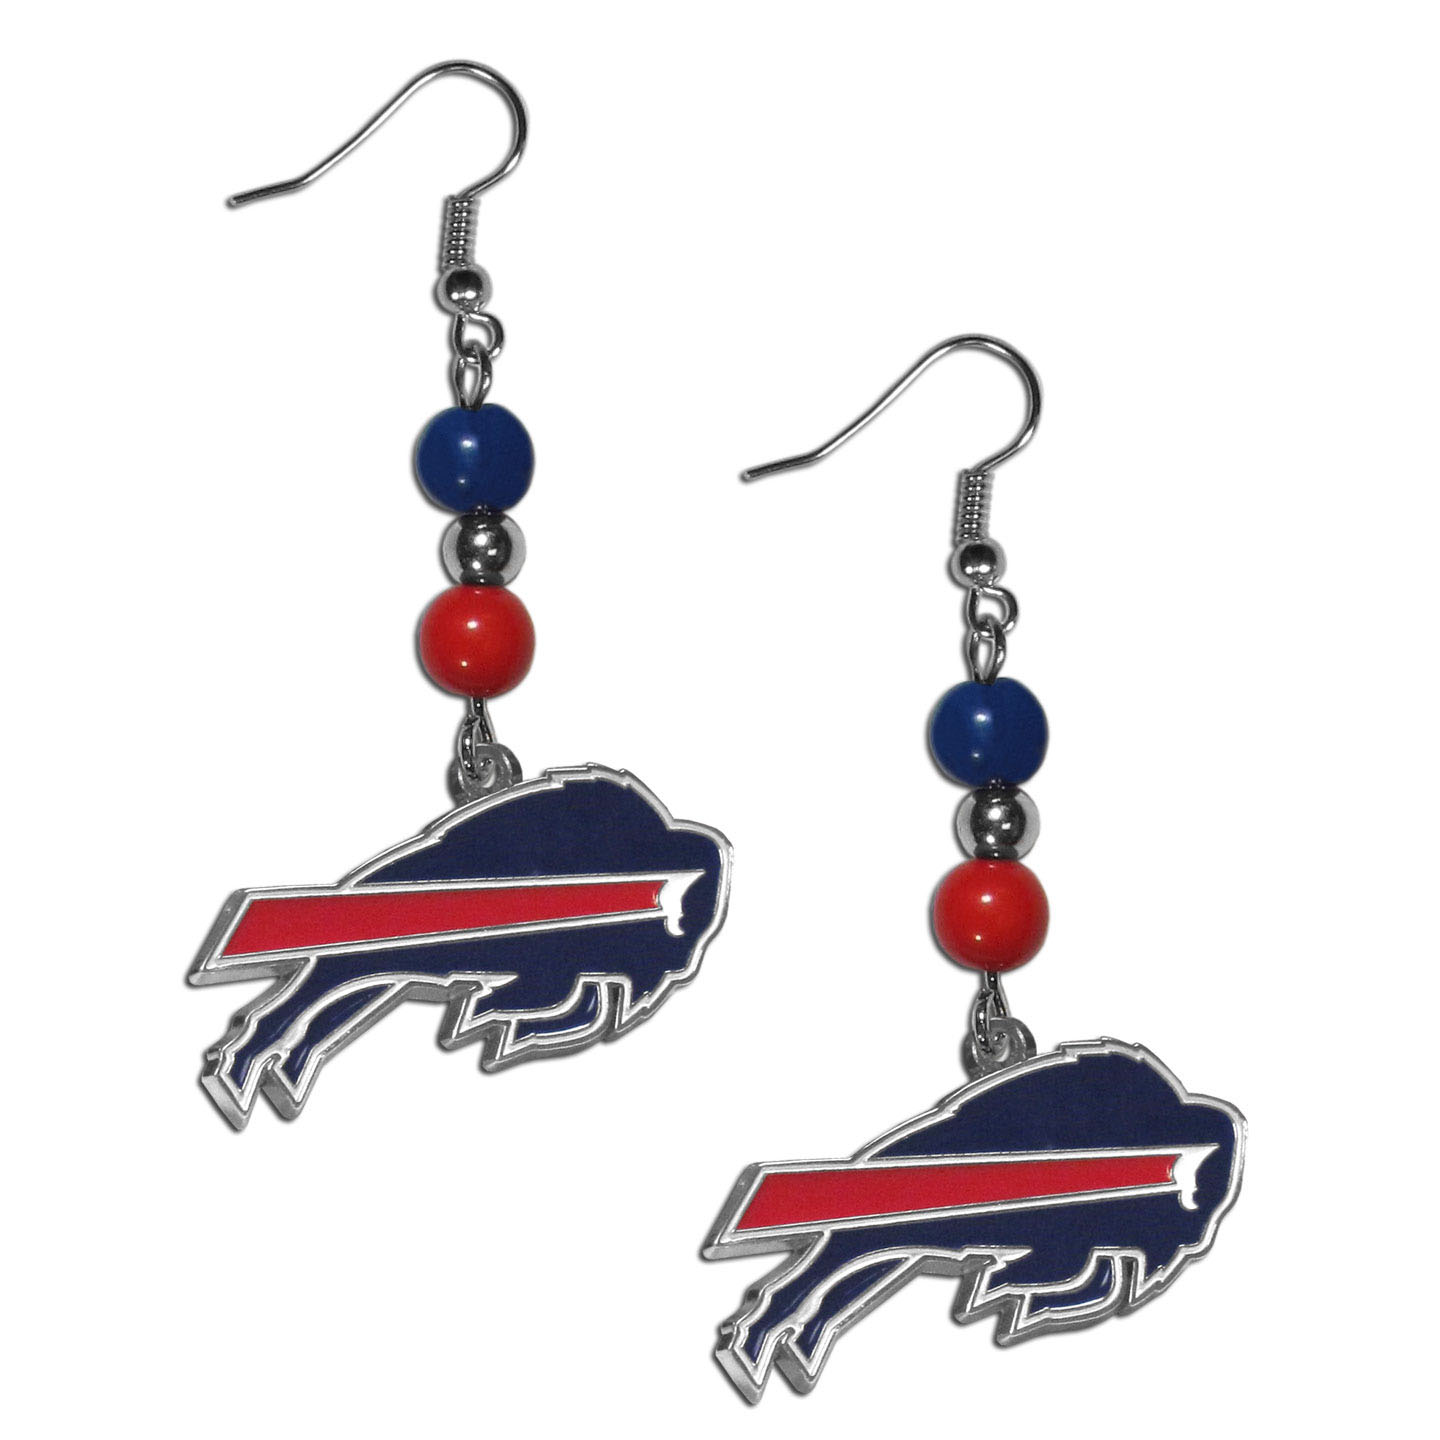 Buffalo Bills Fan Bead Dangle Earrings - Love your team, show it off with our Buffalo Bills bead dangle earrings! These super cute earrings hang approximately 2 inches and features 2 team colored beads and a high polish team charm. A must have for game day!